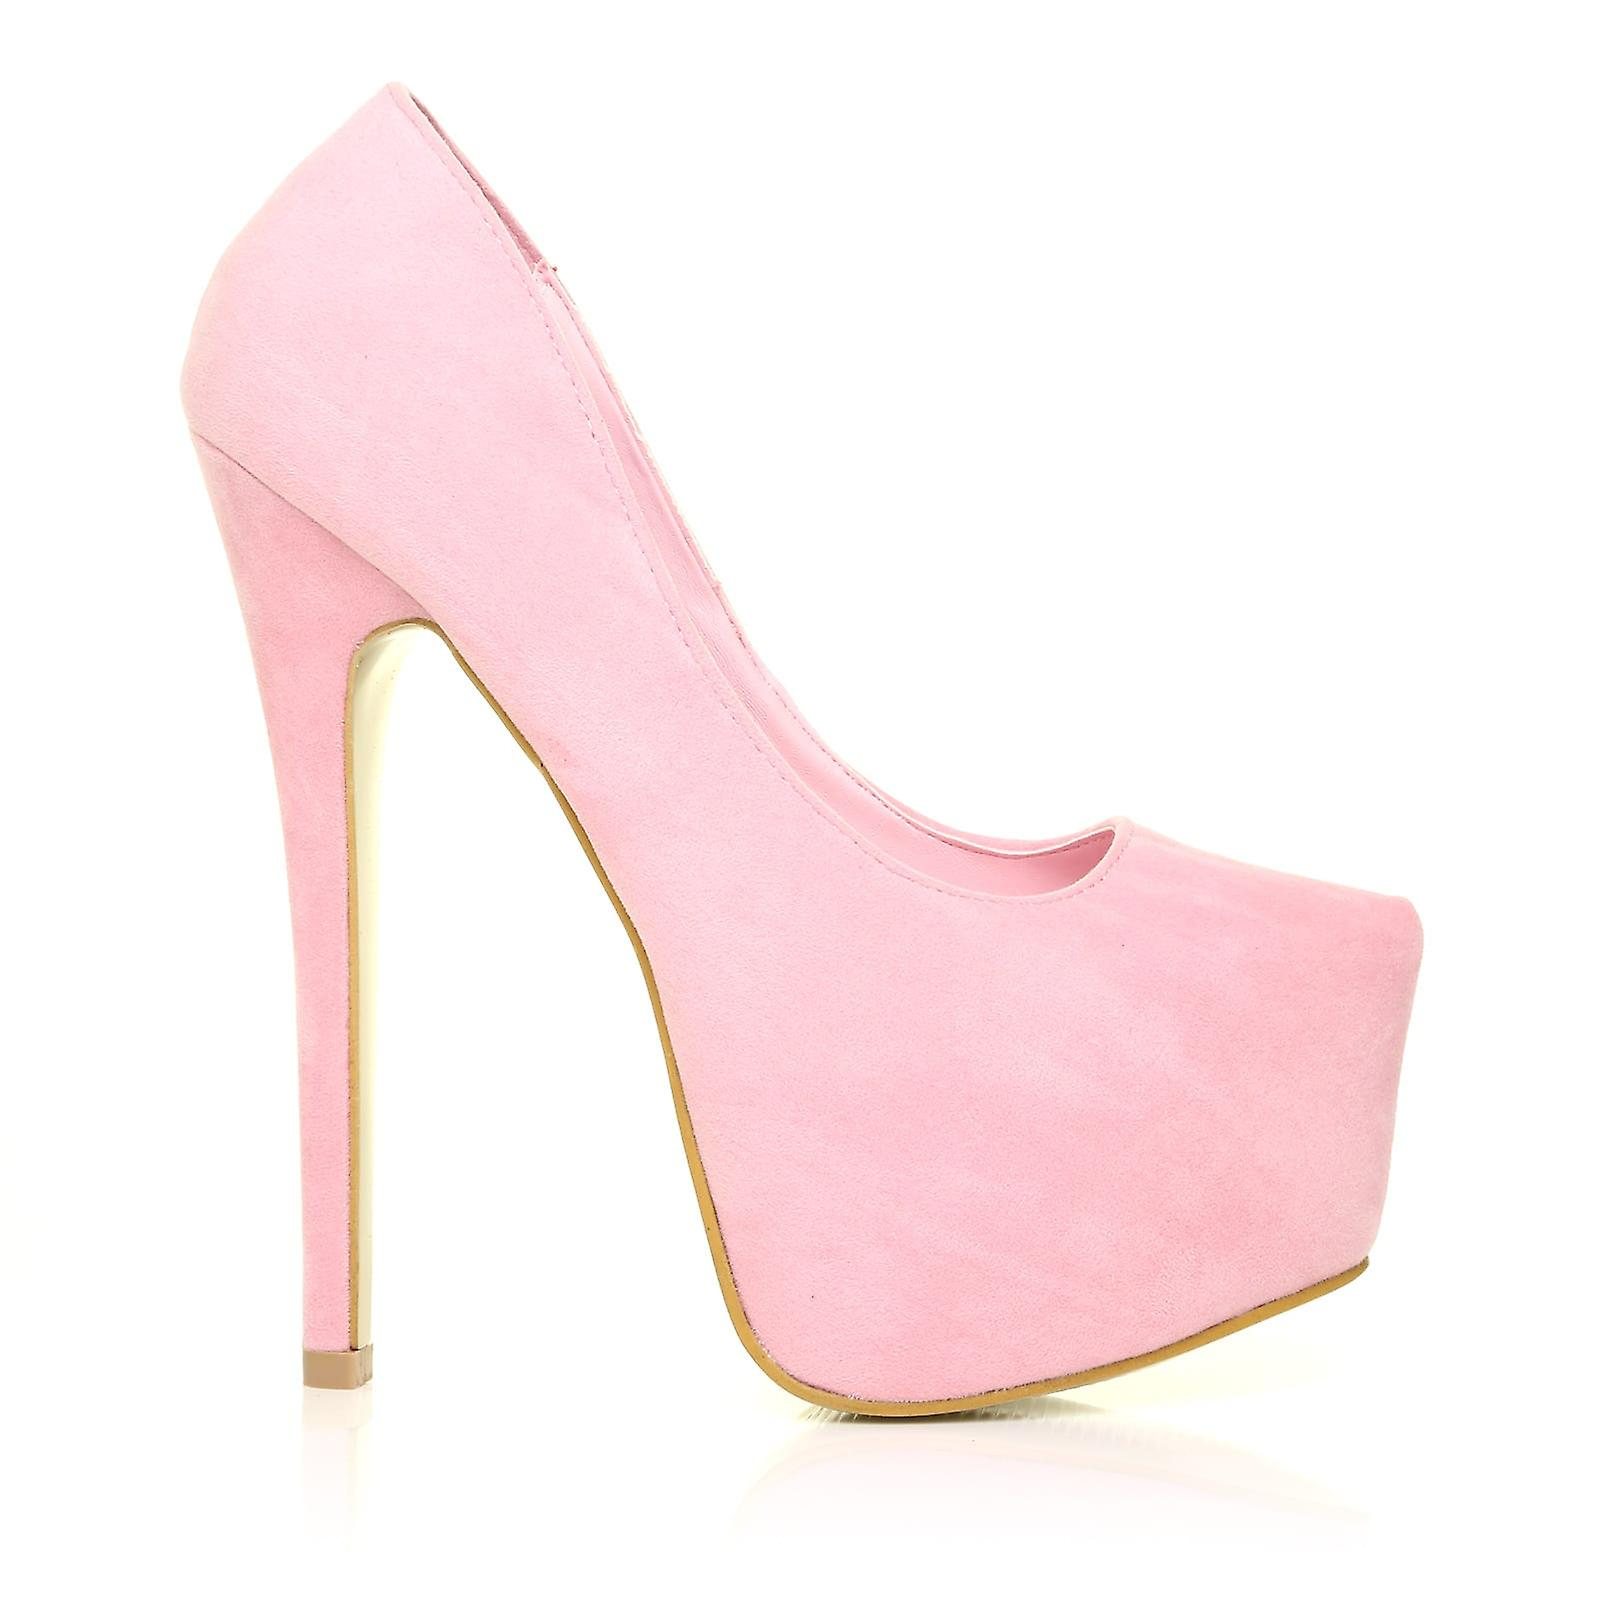 DONNA Baby Very Pink Faux Suede Stilleto Very Baby High Heel Platform Court Shoes 4549a8